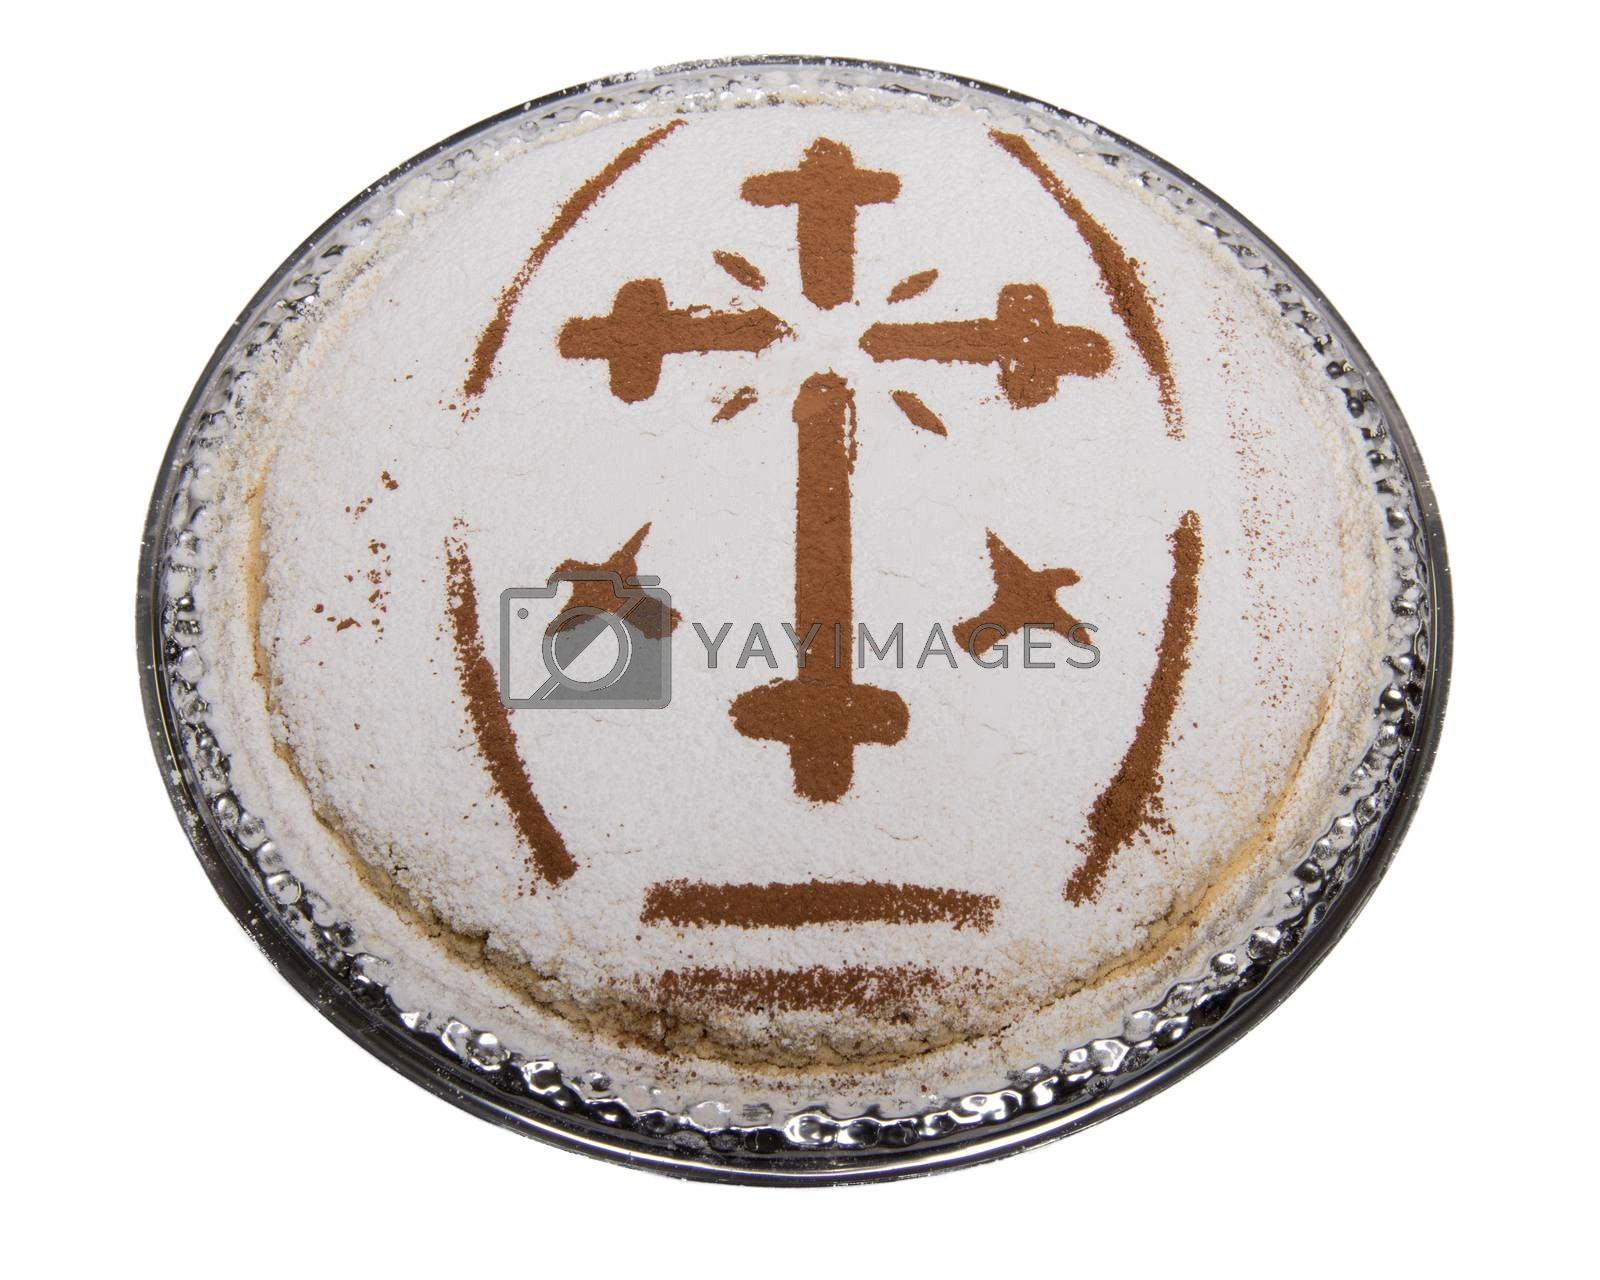 A plate with traditional Coliva, a dish based on boiled wheat that is used liturgically in the Eastern Orthodox Church for commemorations of the dead especially during Easter.